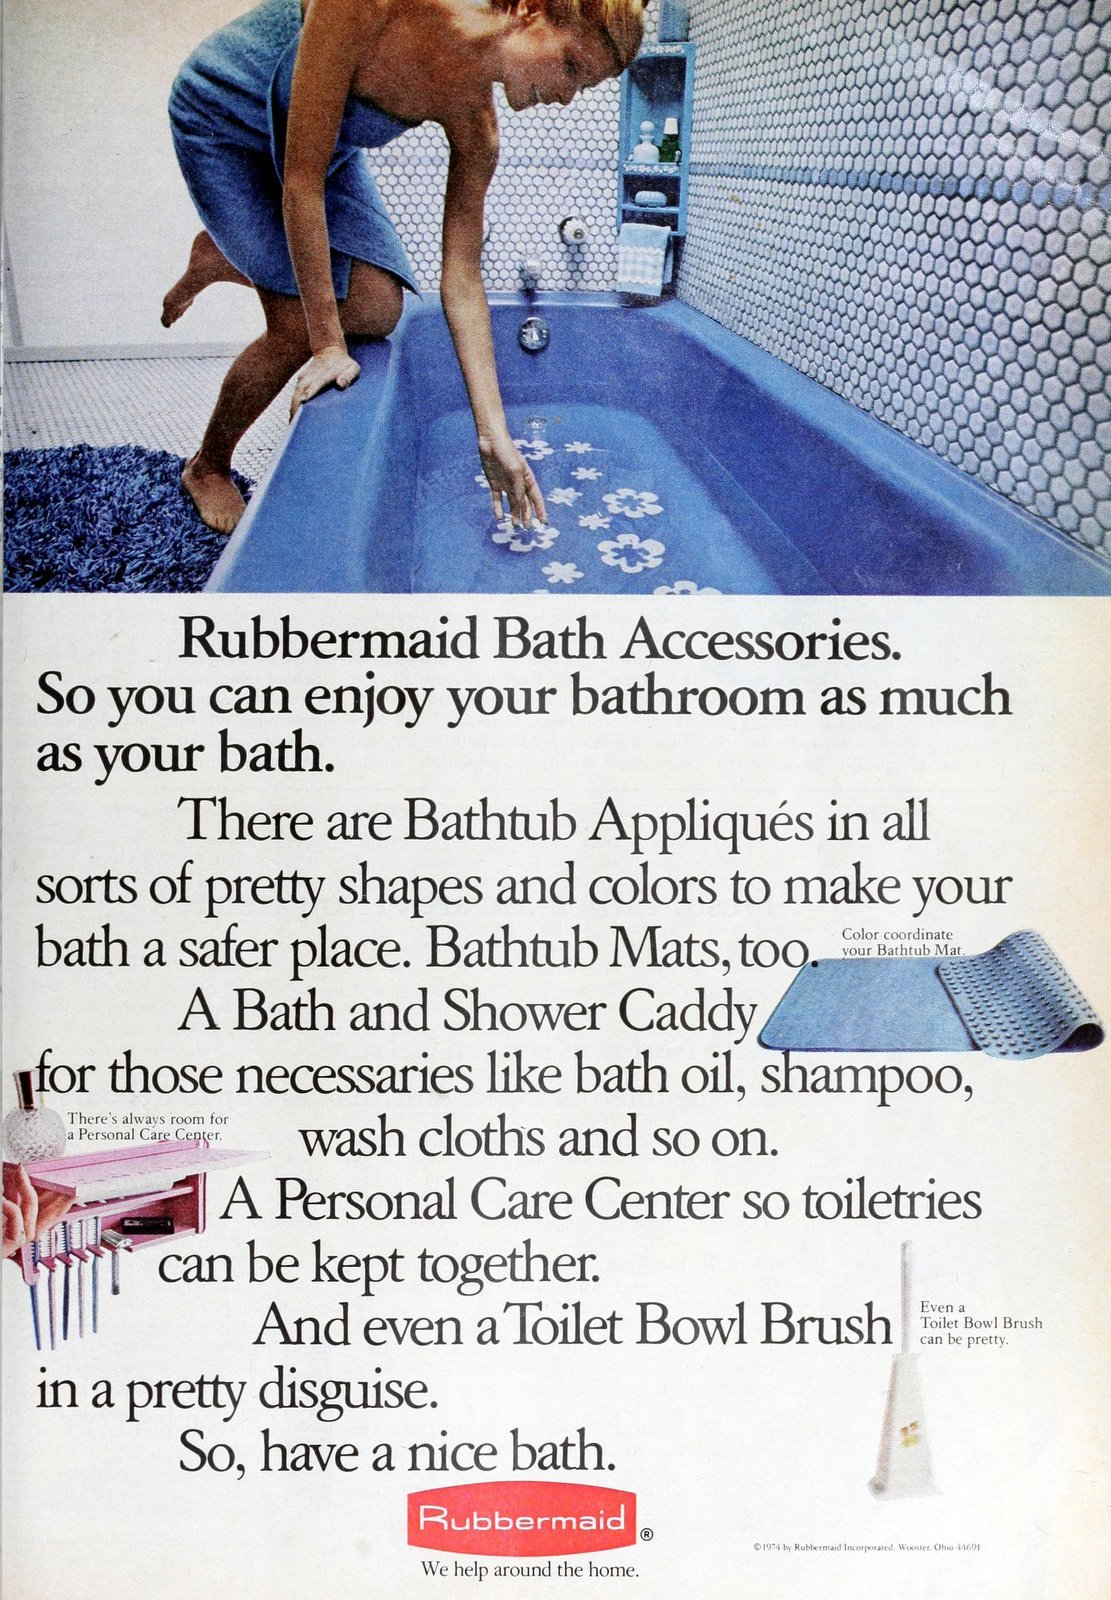 Rubbermaid bath accessories and flower-shaped bathtub stickers (1973)